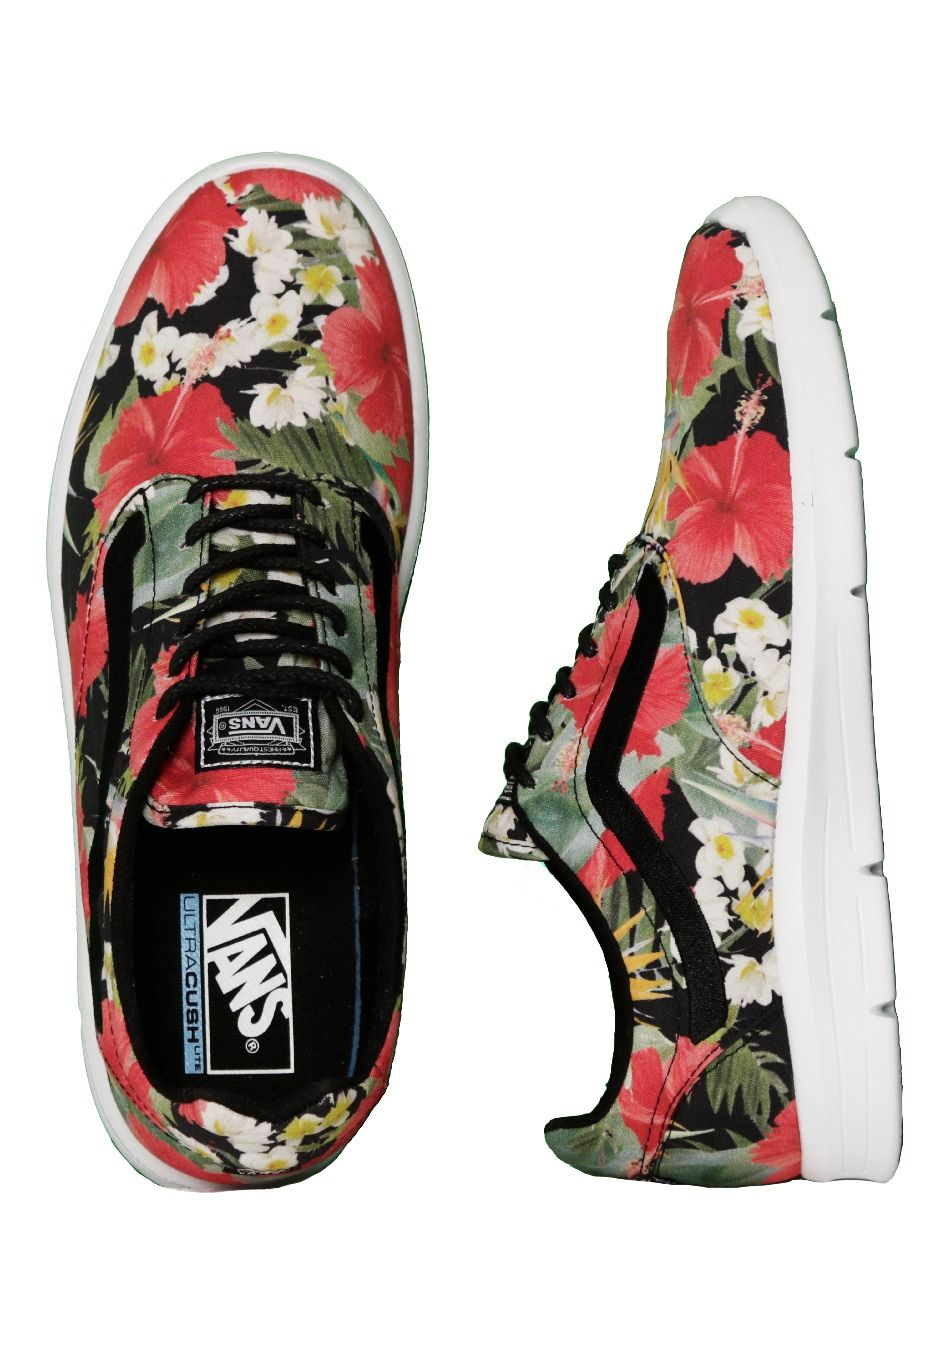 newest 44fbc 6f1fe Vans - Iso 1.5 + Digi Aloha - Shoes - Shoes - Fan merch, superheroes,  starwars and much more - Impericon.com UK